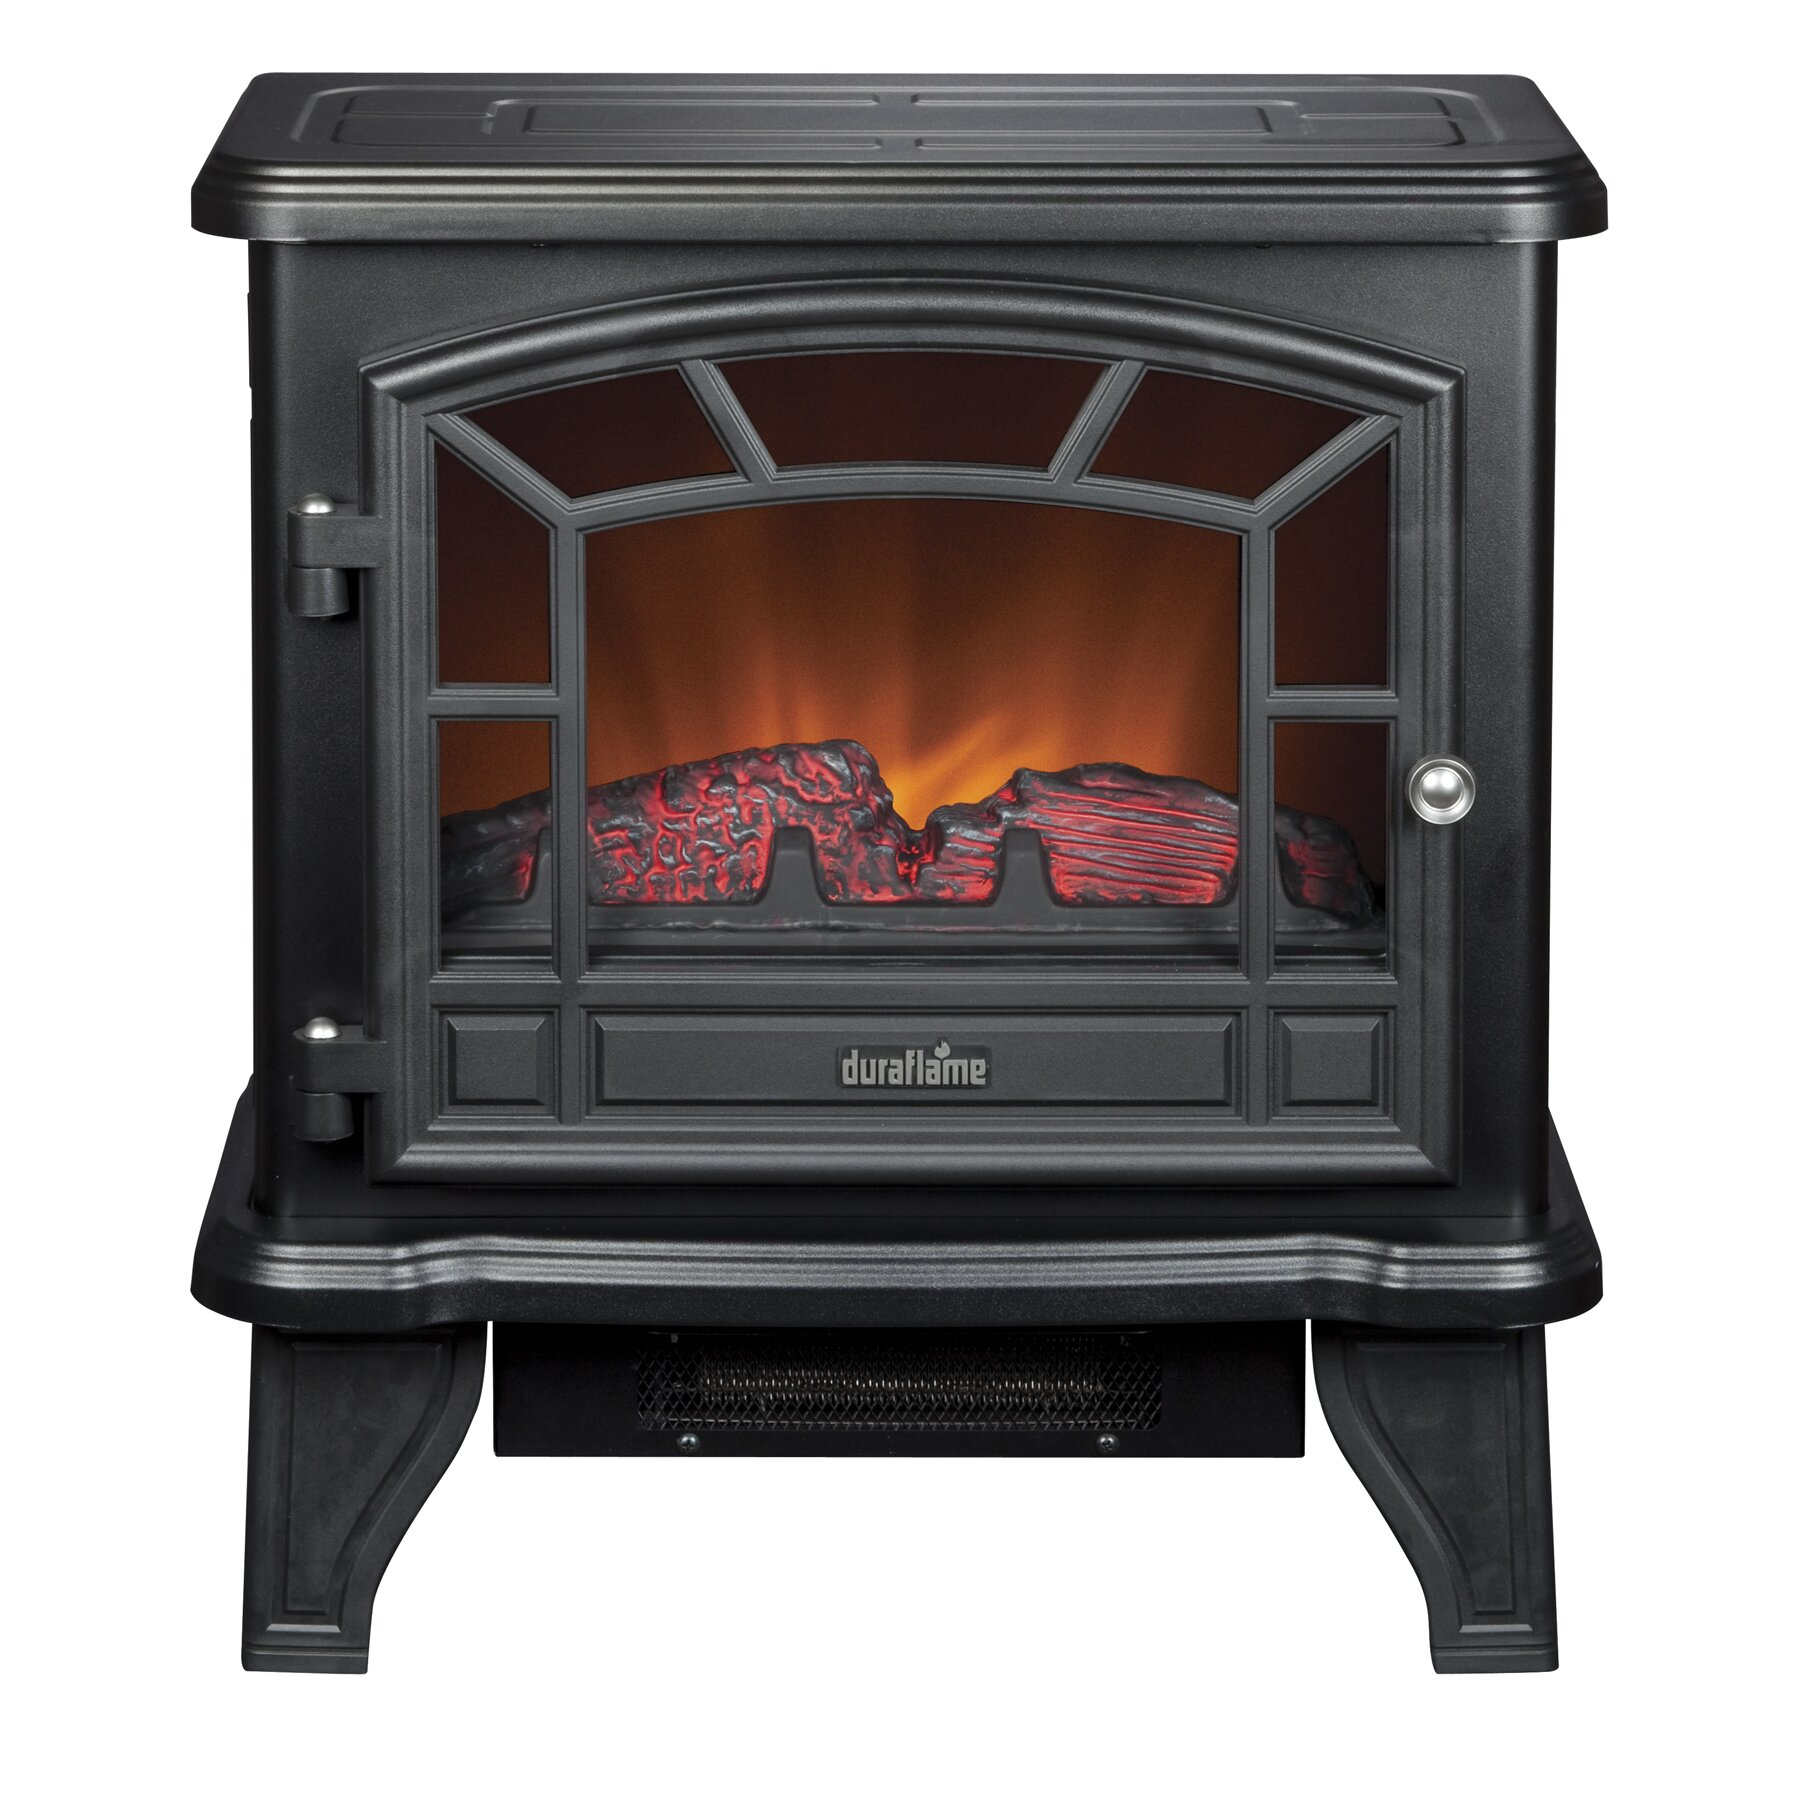 Duraflame 400 square foot electric stove reviews wayfair - Reviews on electric stoves ...